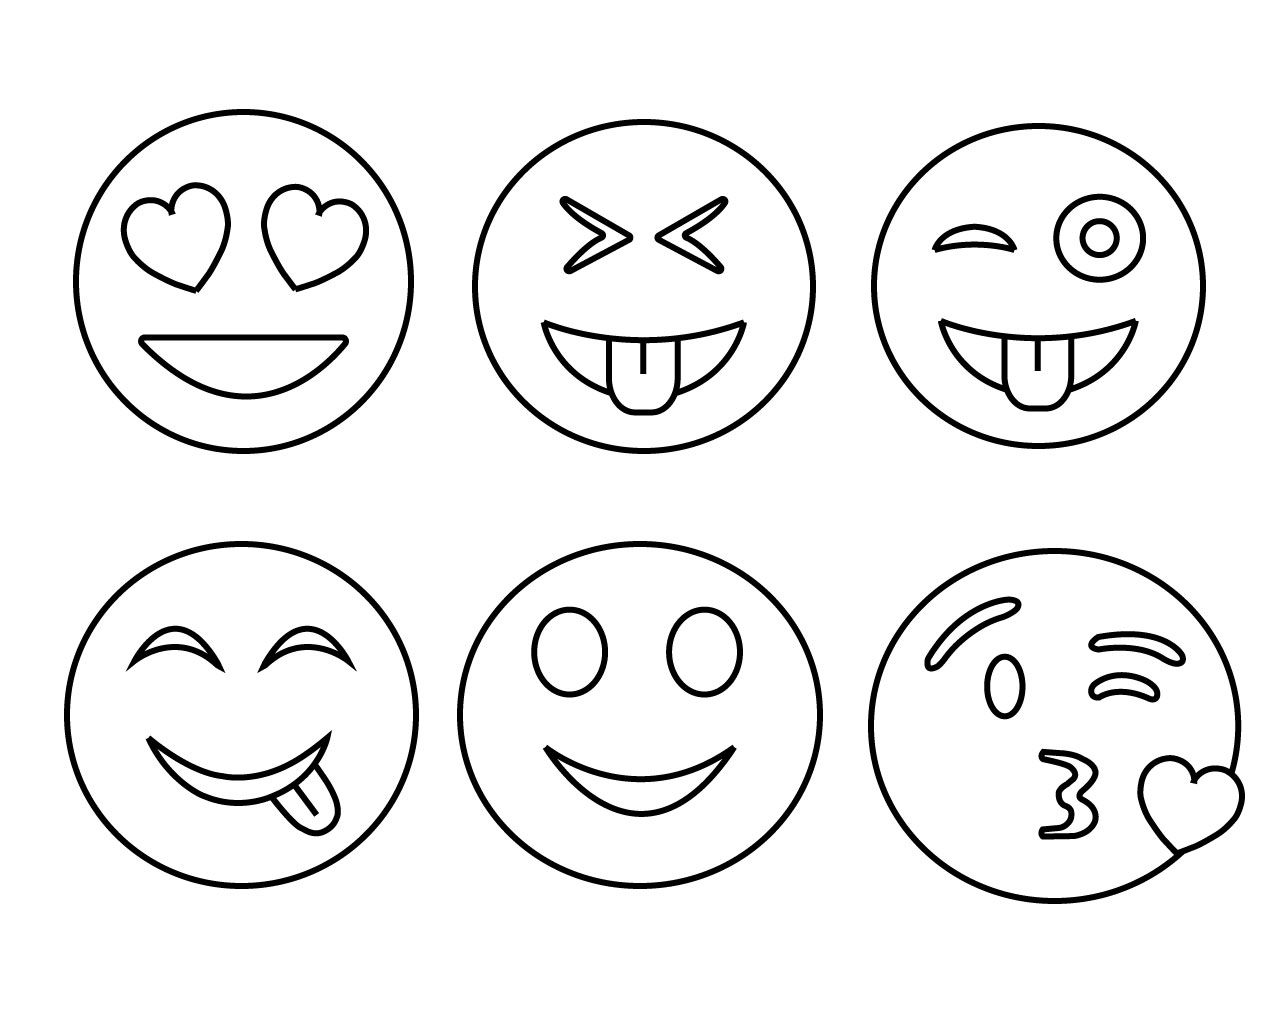 Free Printable Emoji Coloring Pages For Kids Heart And